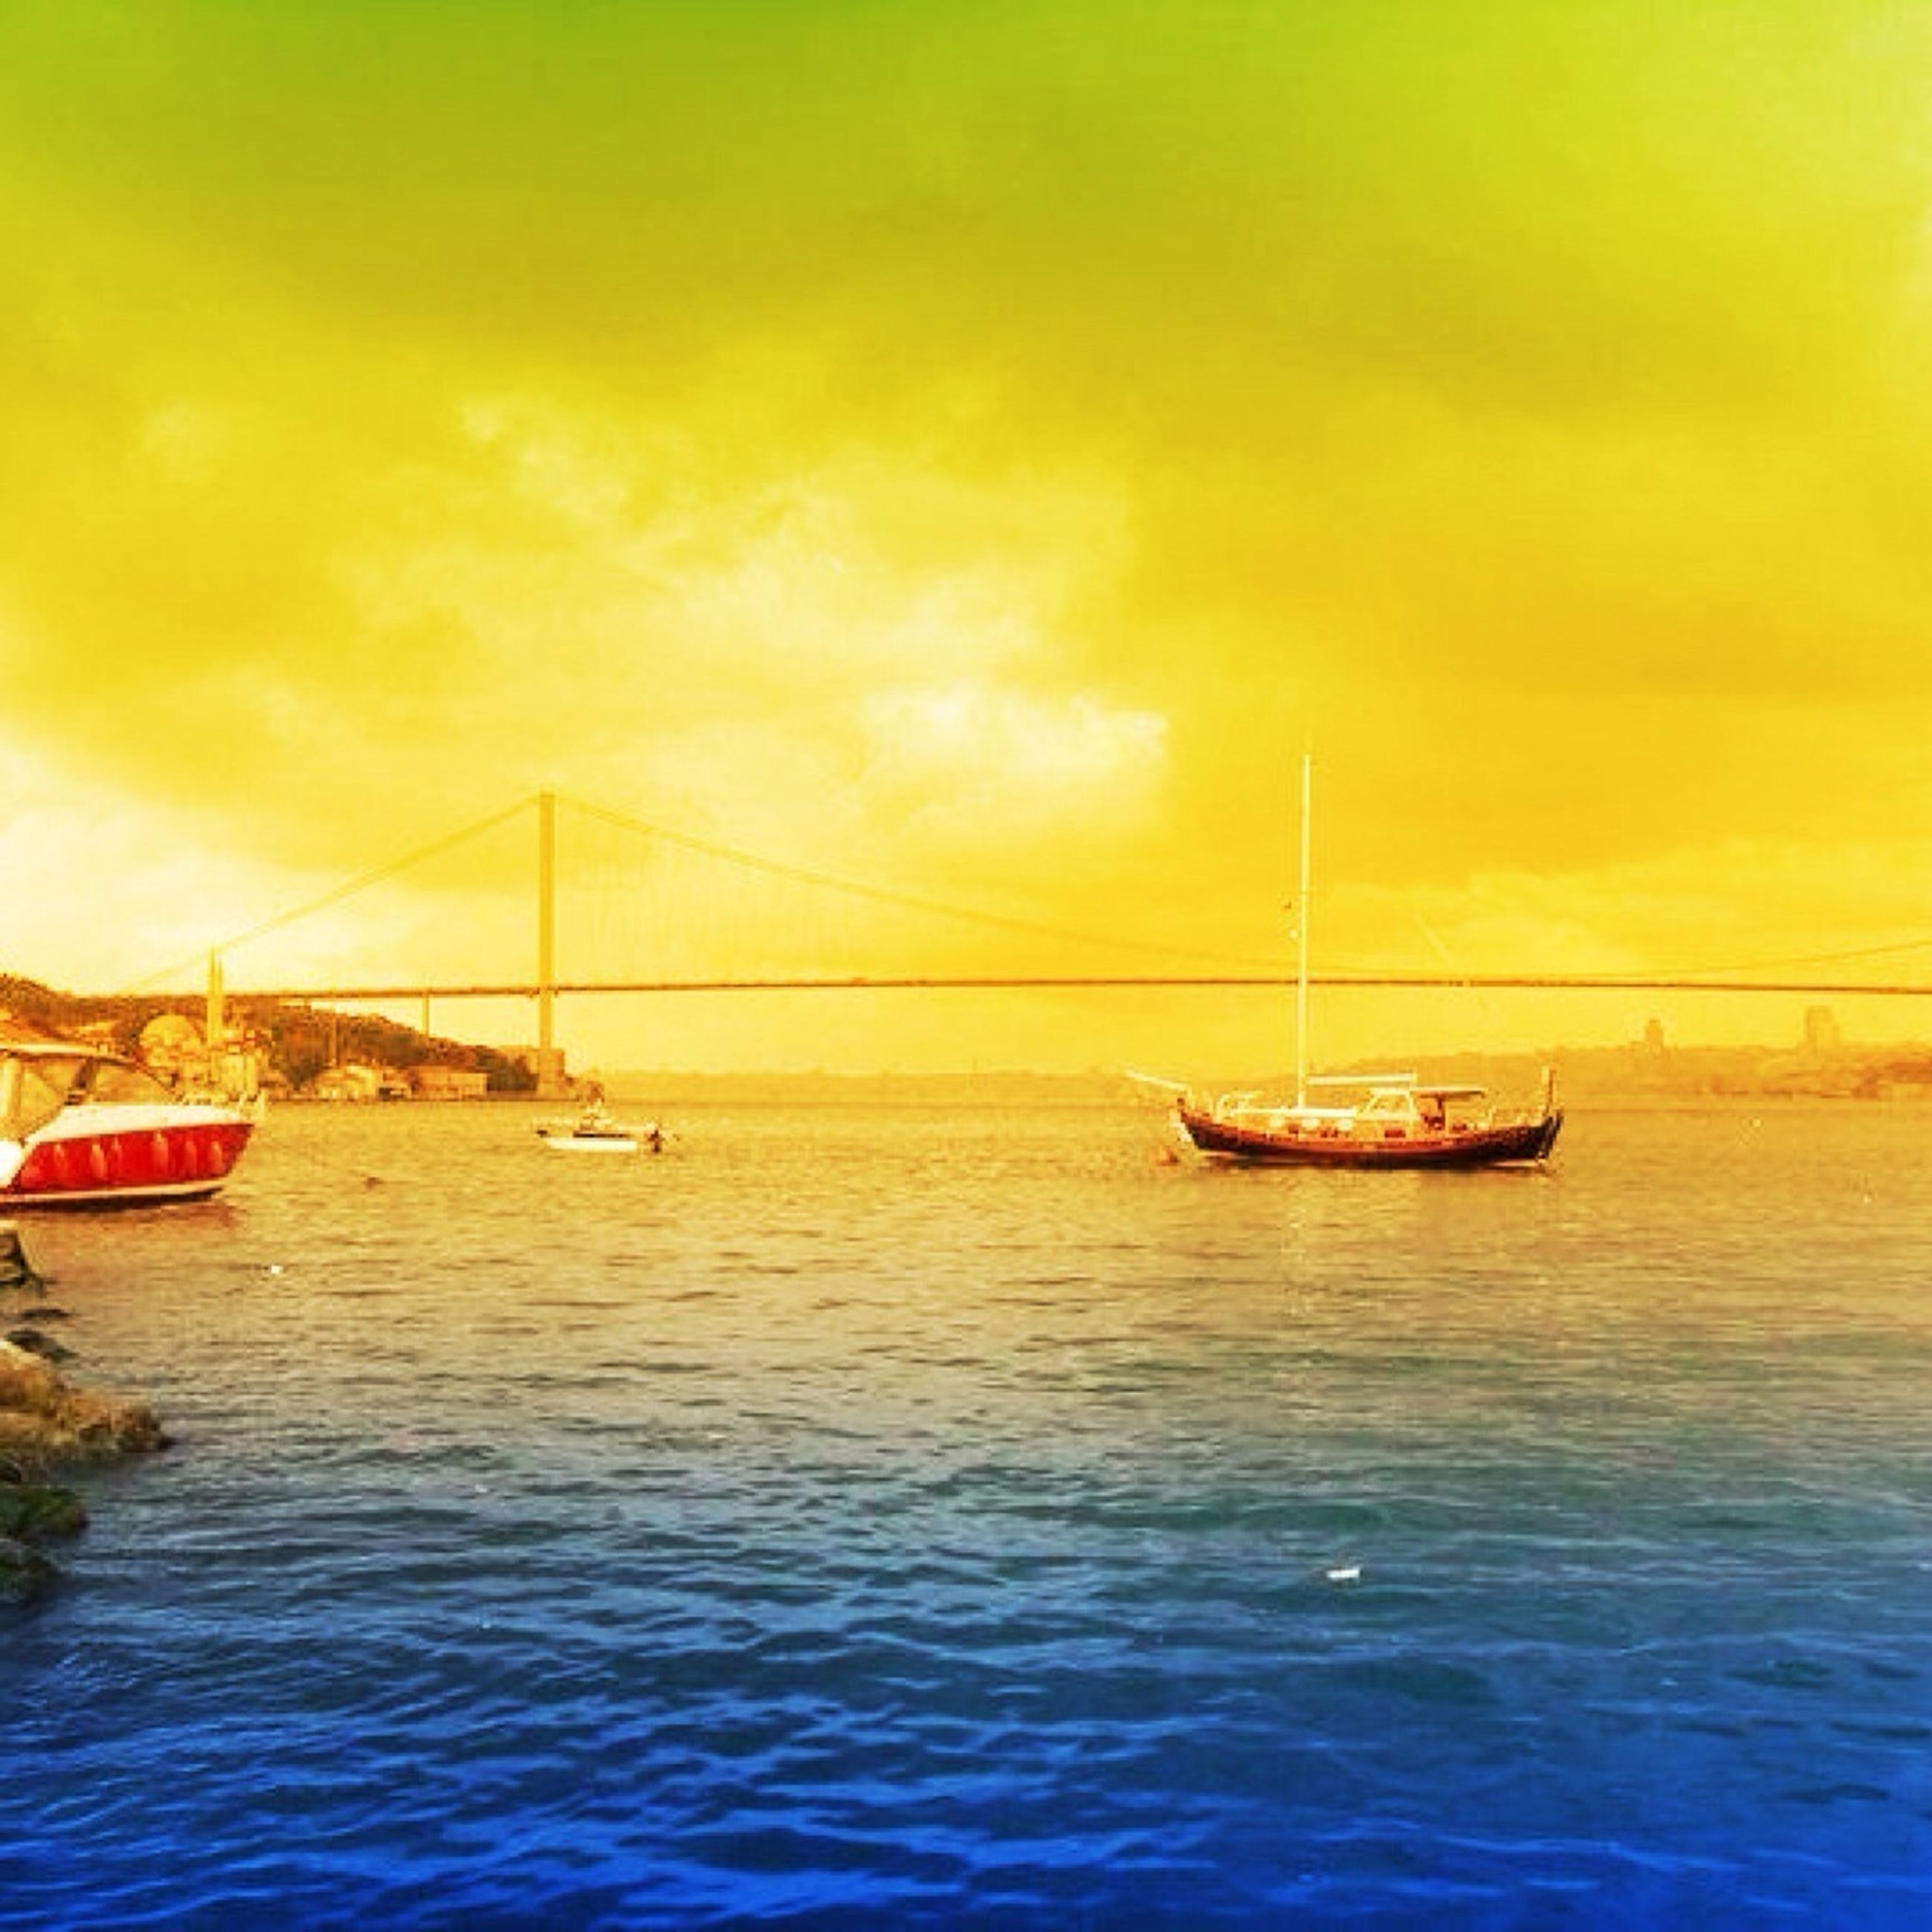 transportation, nautical vessel, mode of transport, boat, water, waterfront, sunset, sea, sailing, sky, beauty in nature, scenics, nature, travel, tranquility, tranquil scene, cloud - sky, orange color, journey, rippled